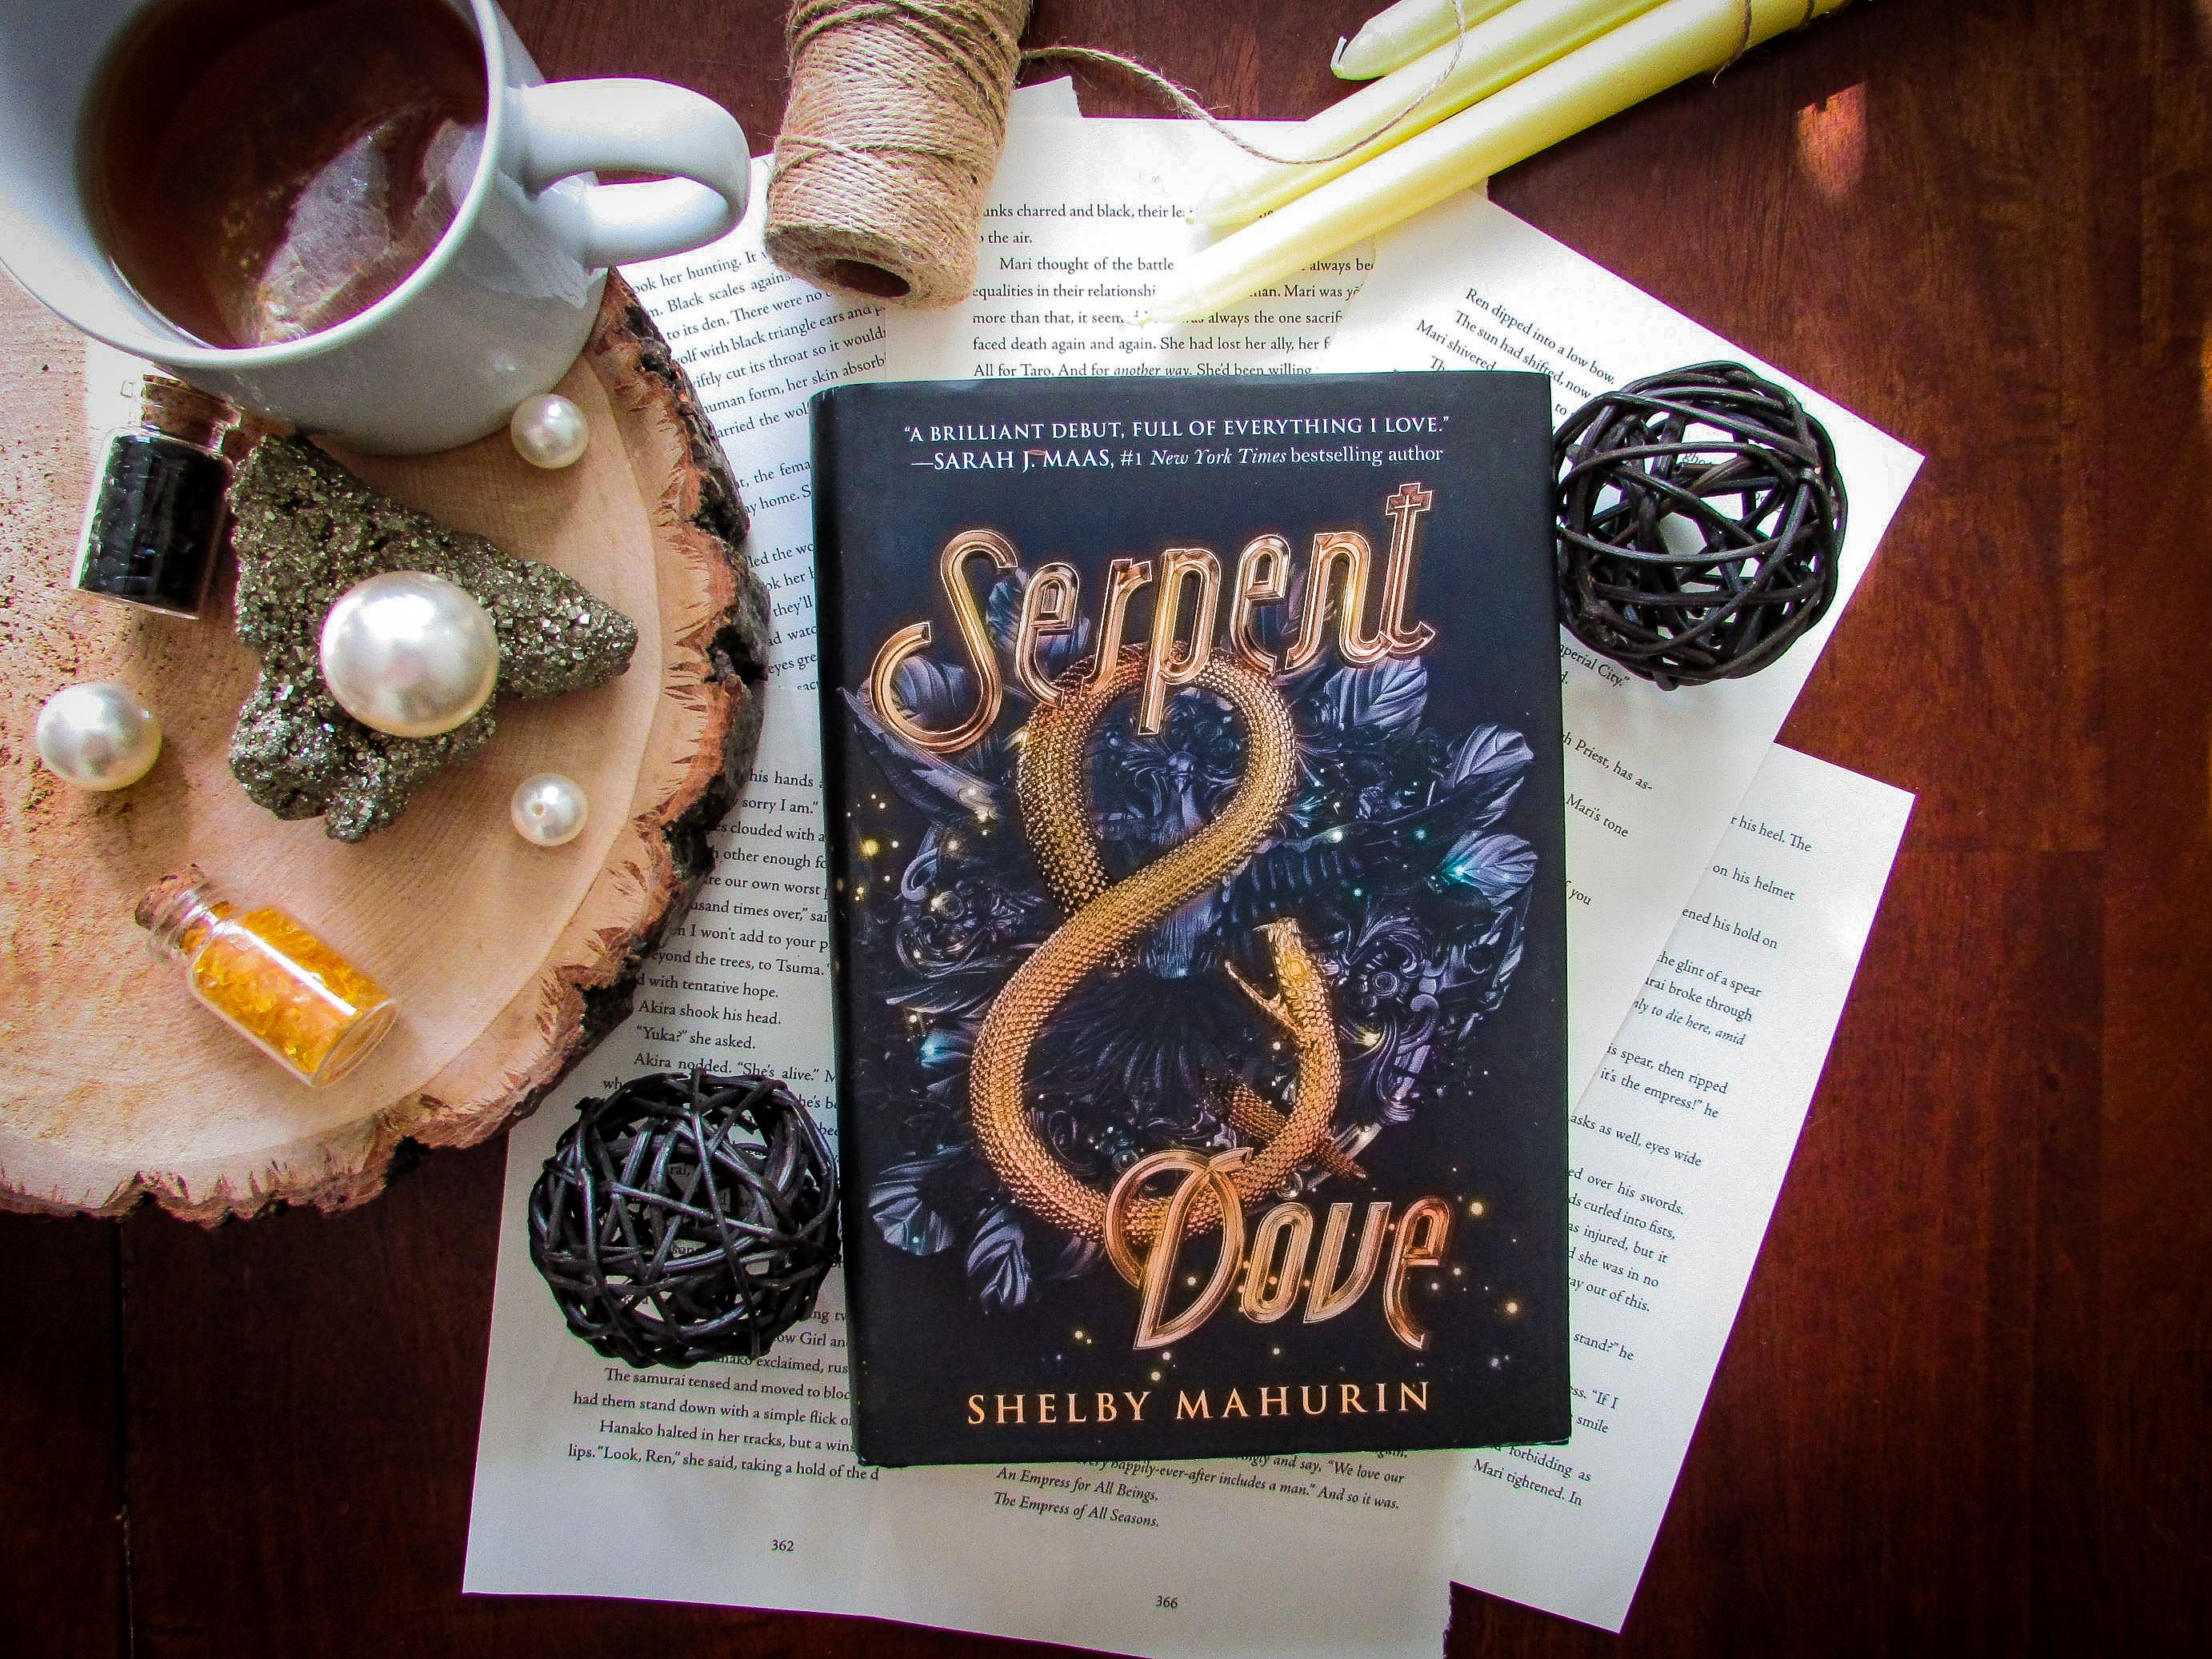 You are currently viewing Serpent & Dove by Shelby Mahurin